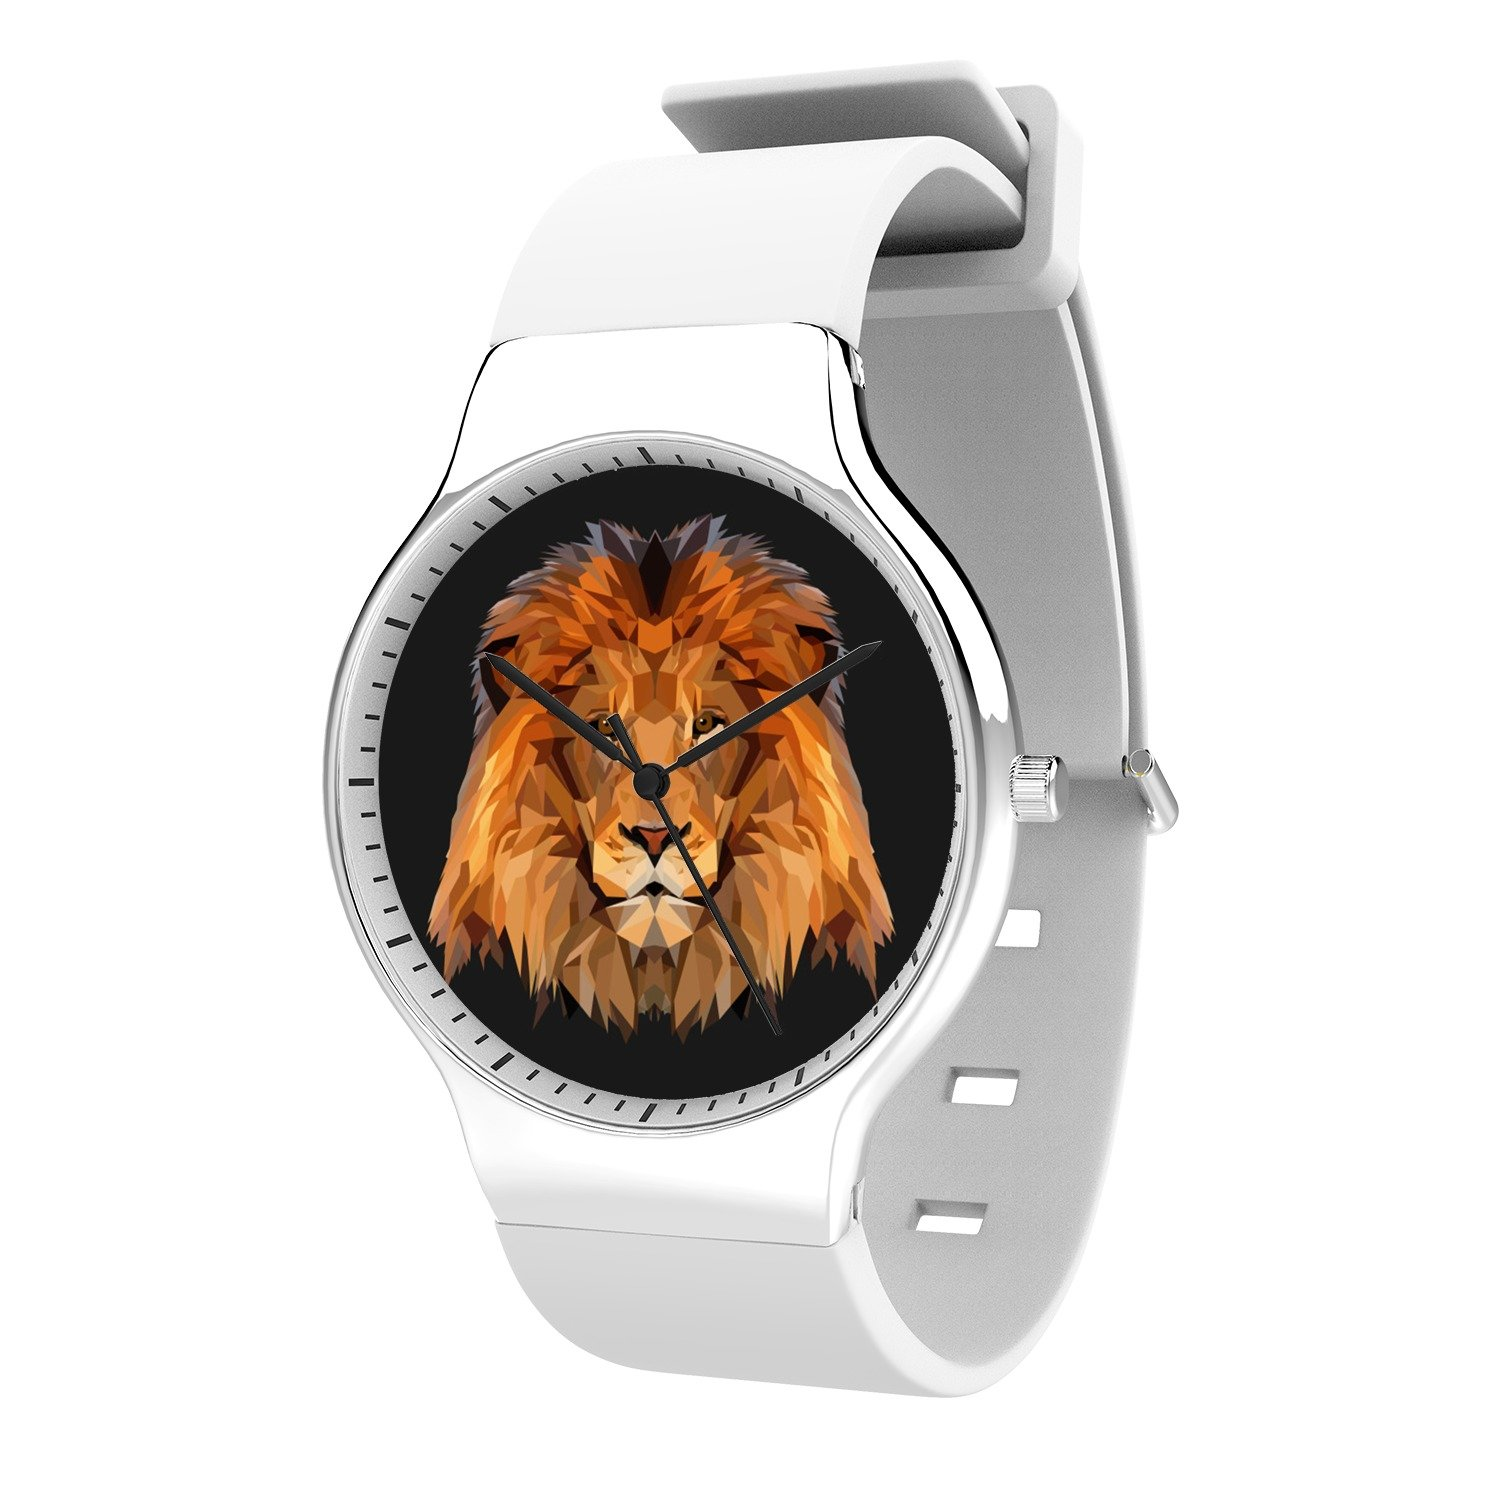 FELOOWSE Animal Watches Lion Watch Men's Quartz Watches, Minimalist Slim Japanese Quartz Youth Silicone Watches, Fashion PracticalWaterproof Boys Watch Customized Watches by FELOOWSE